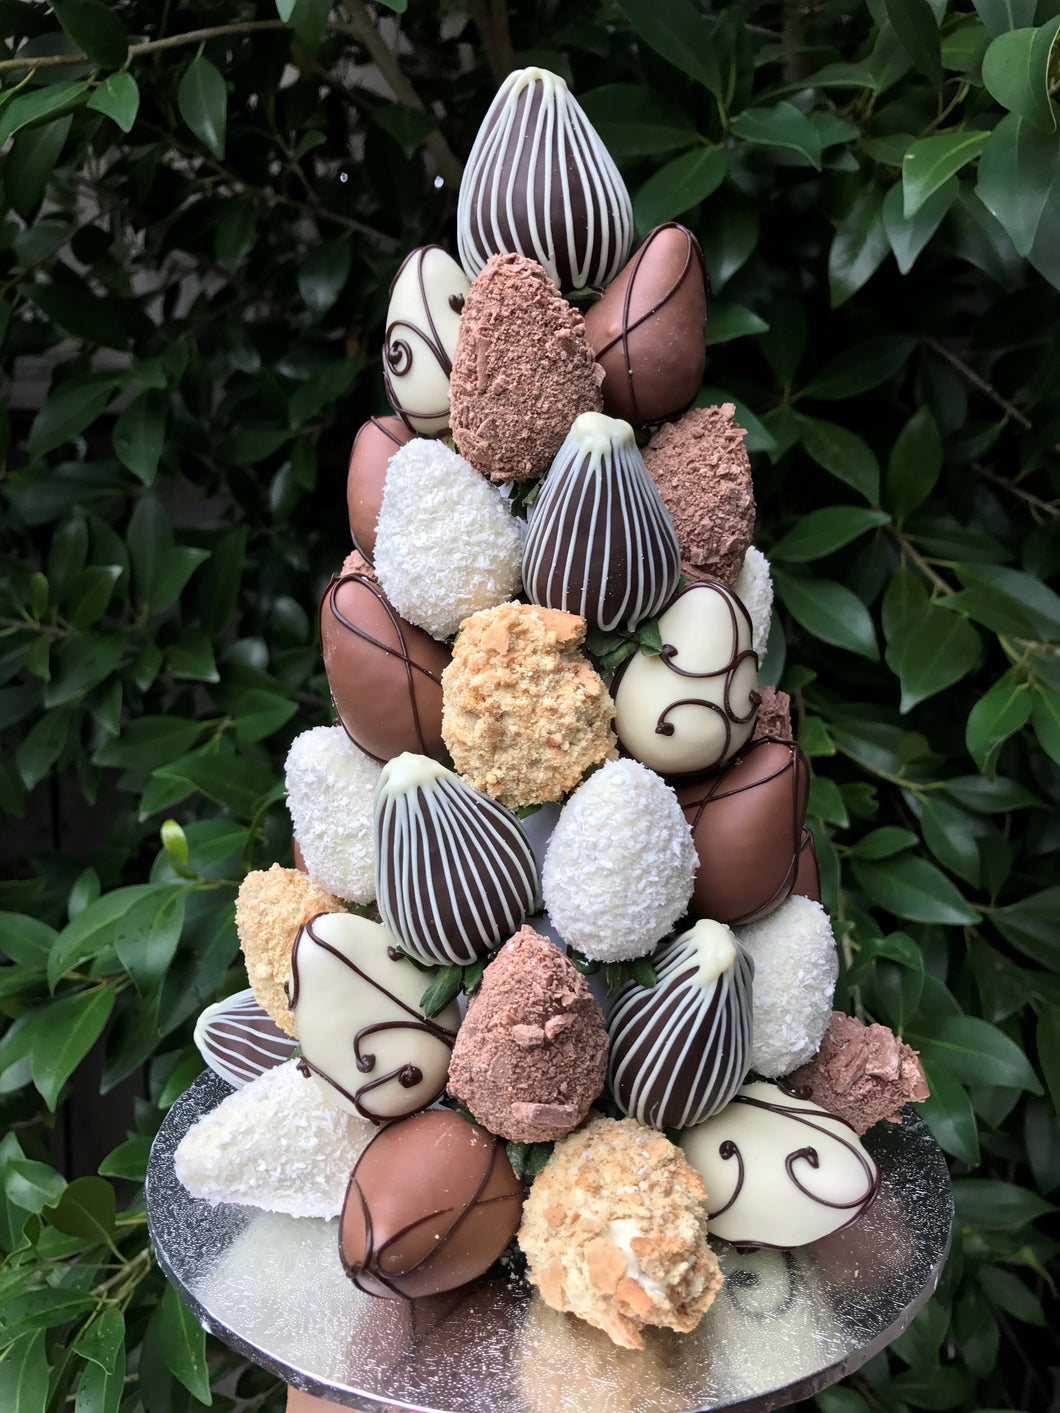 Mixed chocolate strawberry tower dessert made in Melbourne